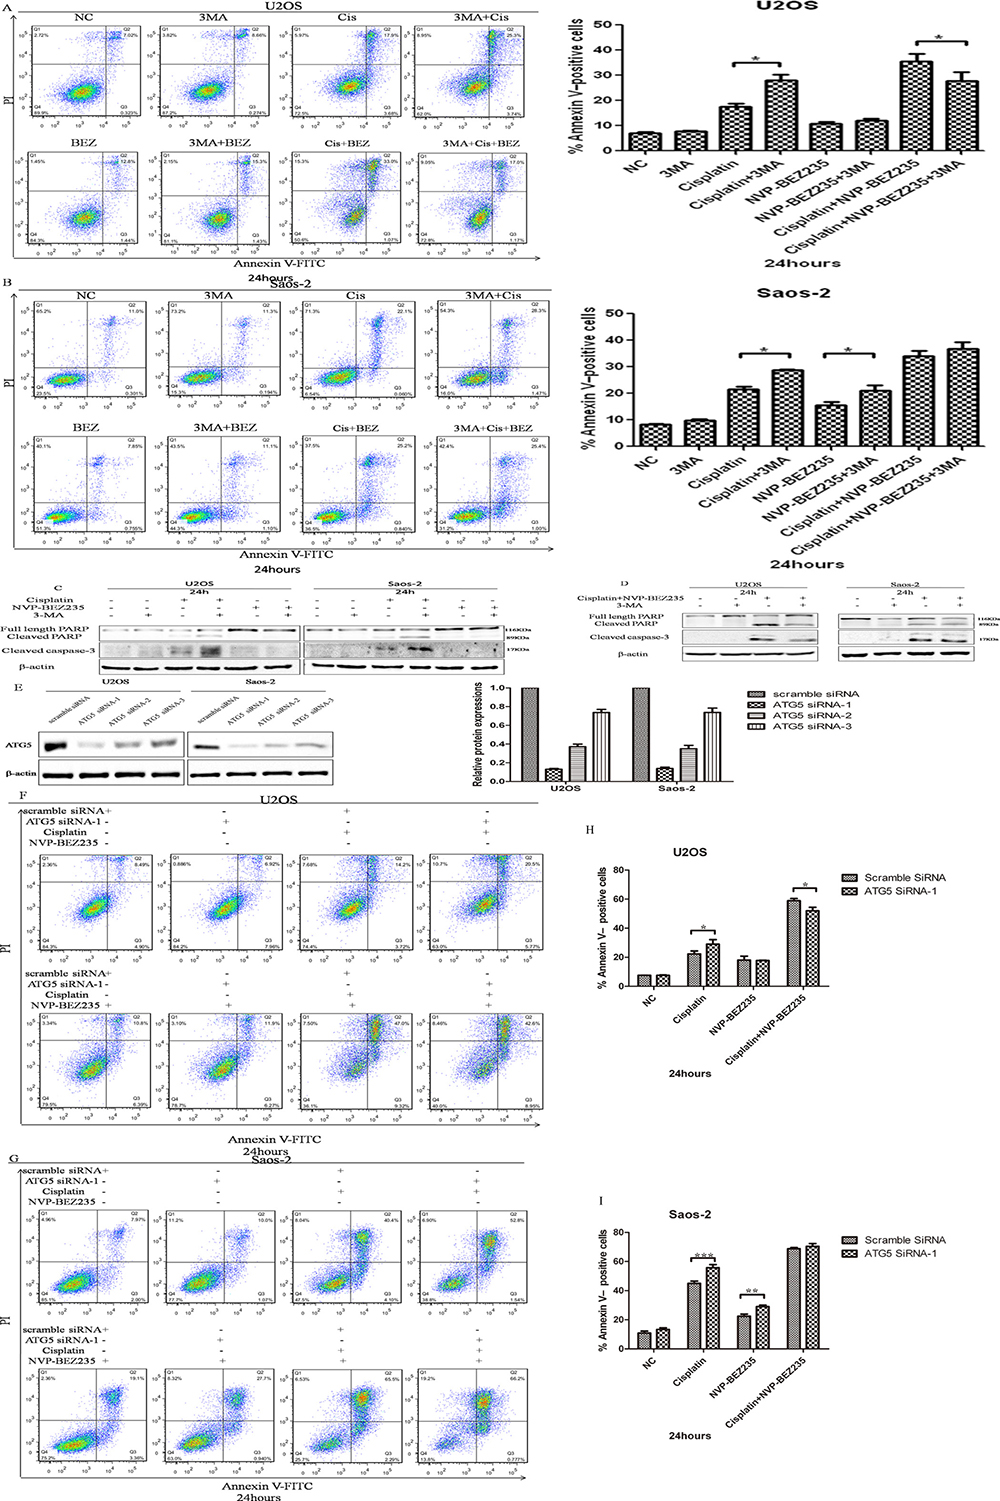 NVP-BEZ235 switches function of autophagy induced by cisplatin in U2OS and Saos-2 cells.